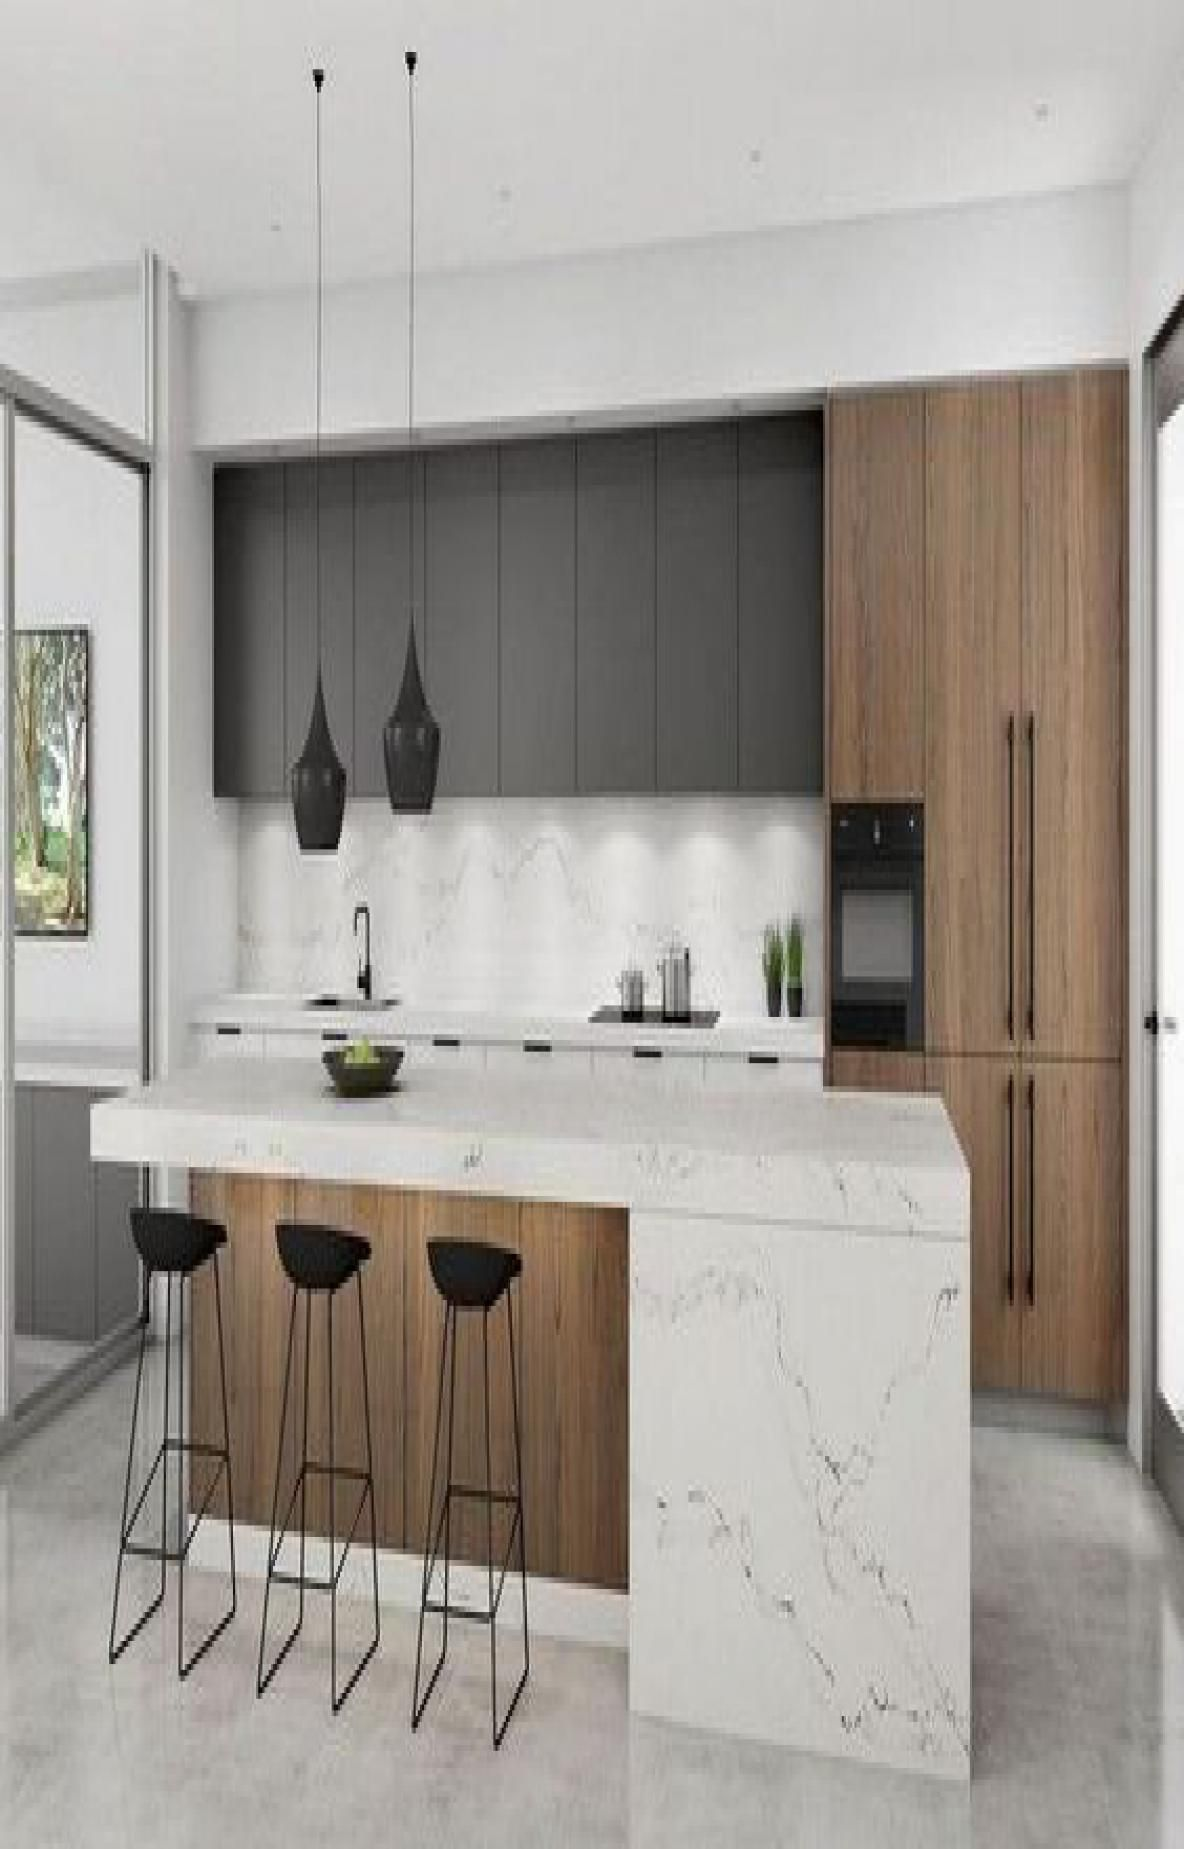 Archilovers Girls Fashiondaily Food Picture Art Fashionblog Beautysalon Weddings Popular In 2020 Contemporary Kitchen Design Kitchen Layout Kitchen Interior